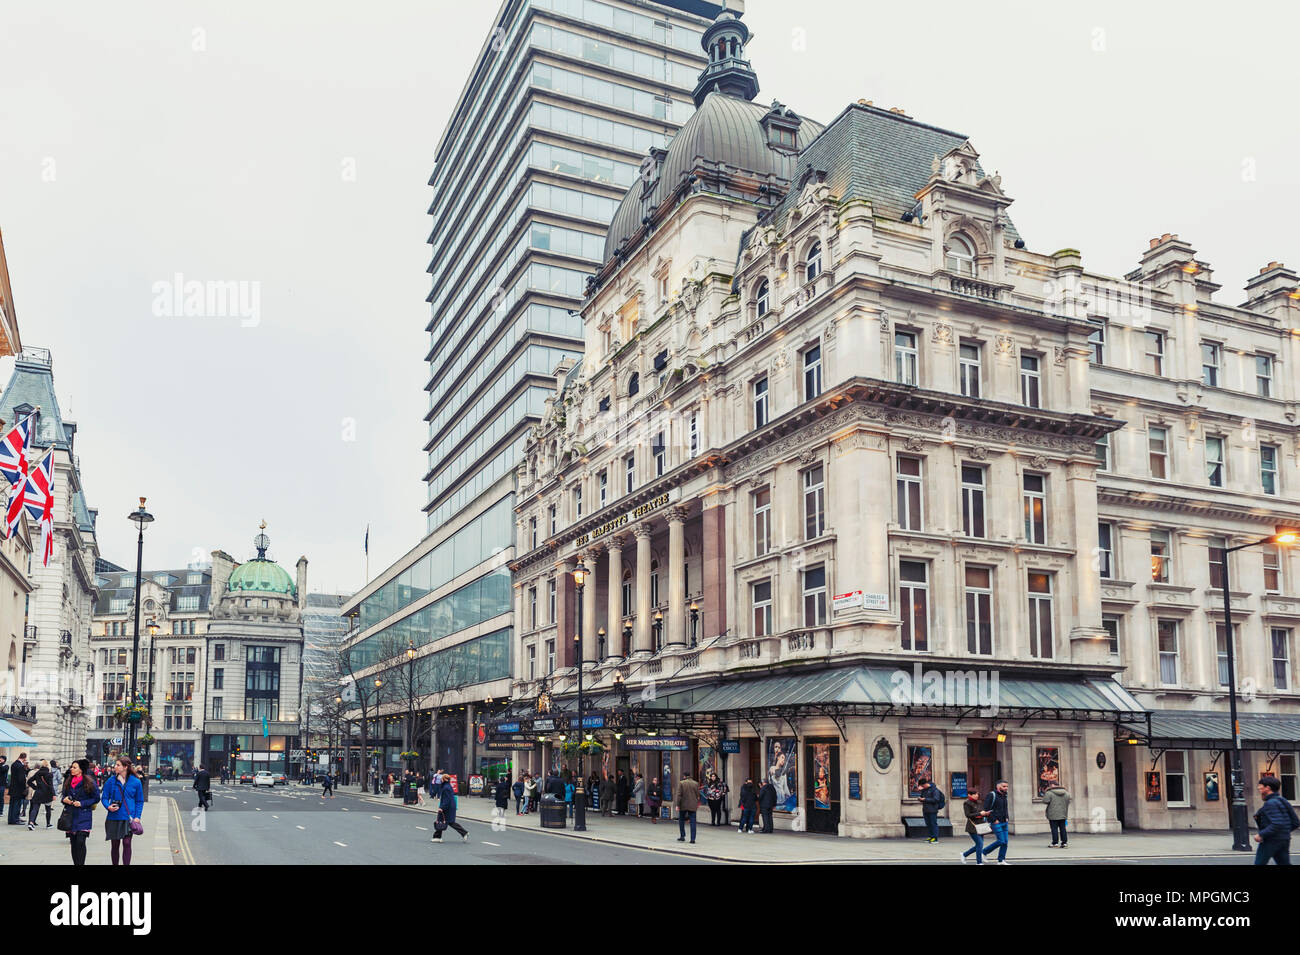 Her Majesty's Theatre, a West End theatre situated on Haymarket in the City of Westminster and venue for the production of Phantom of the Opera - Stock Image